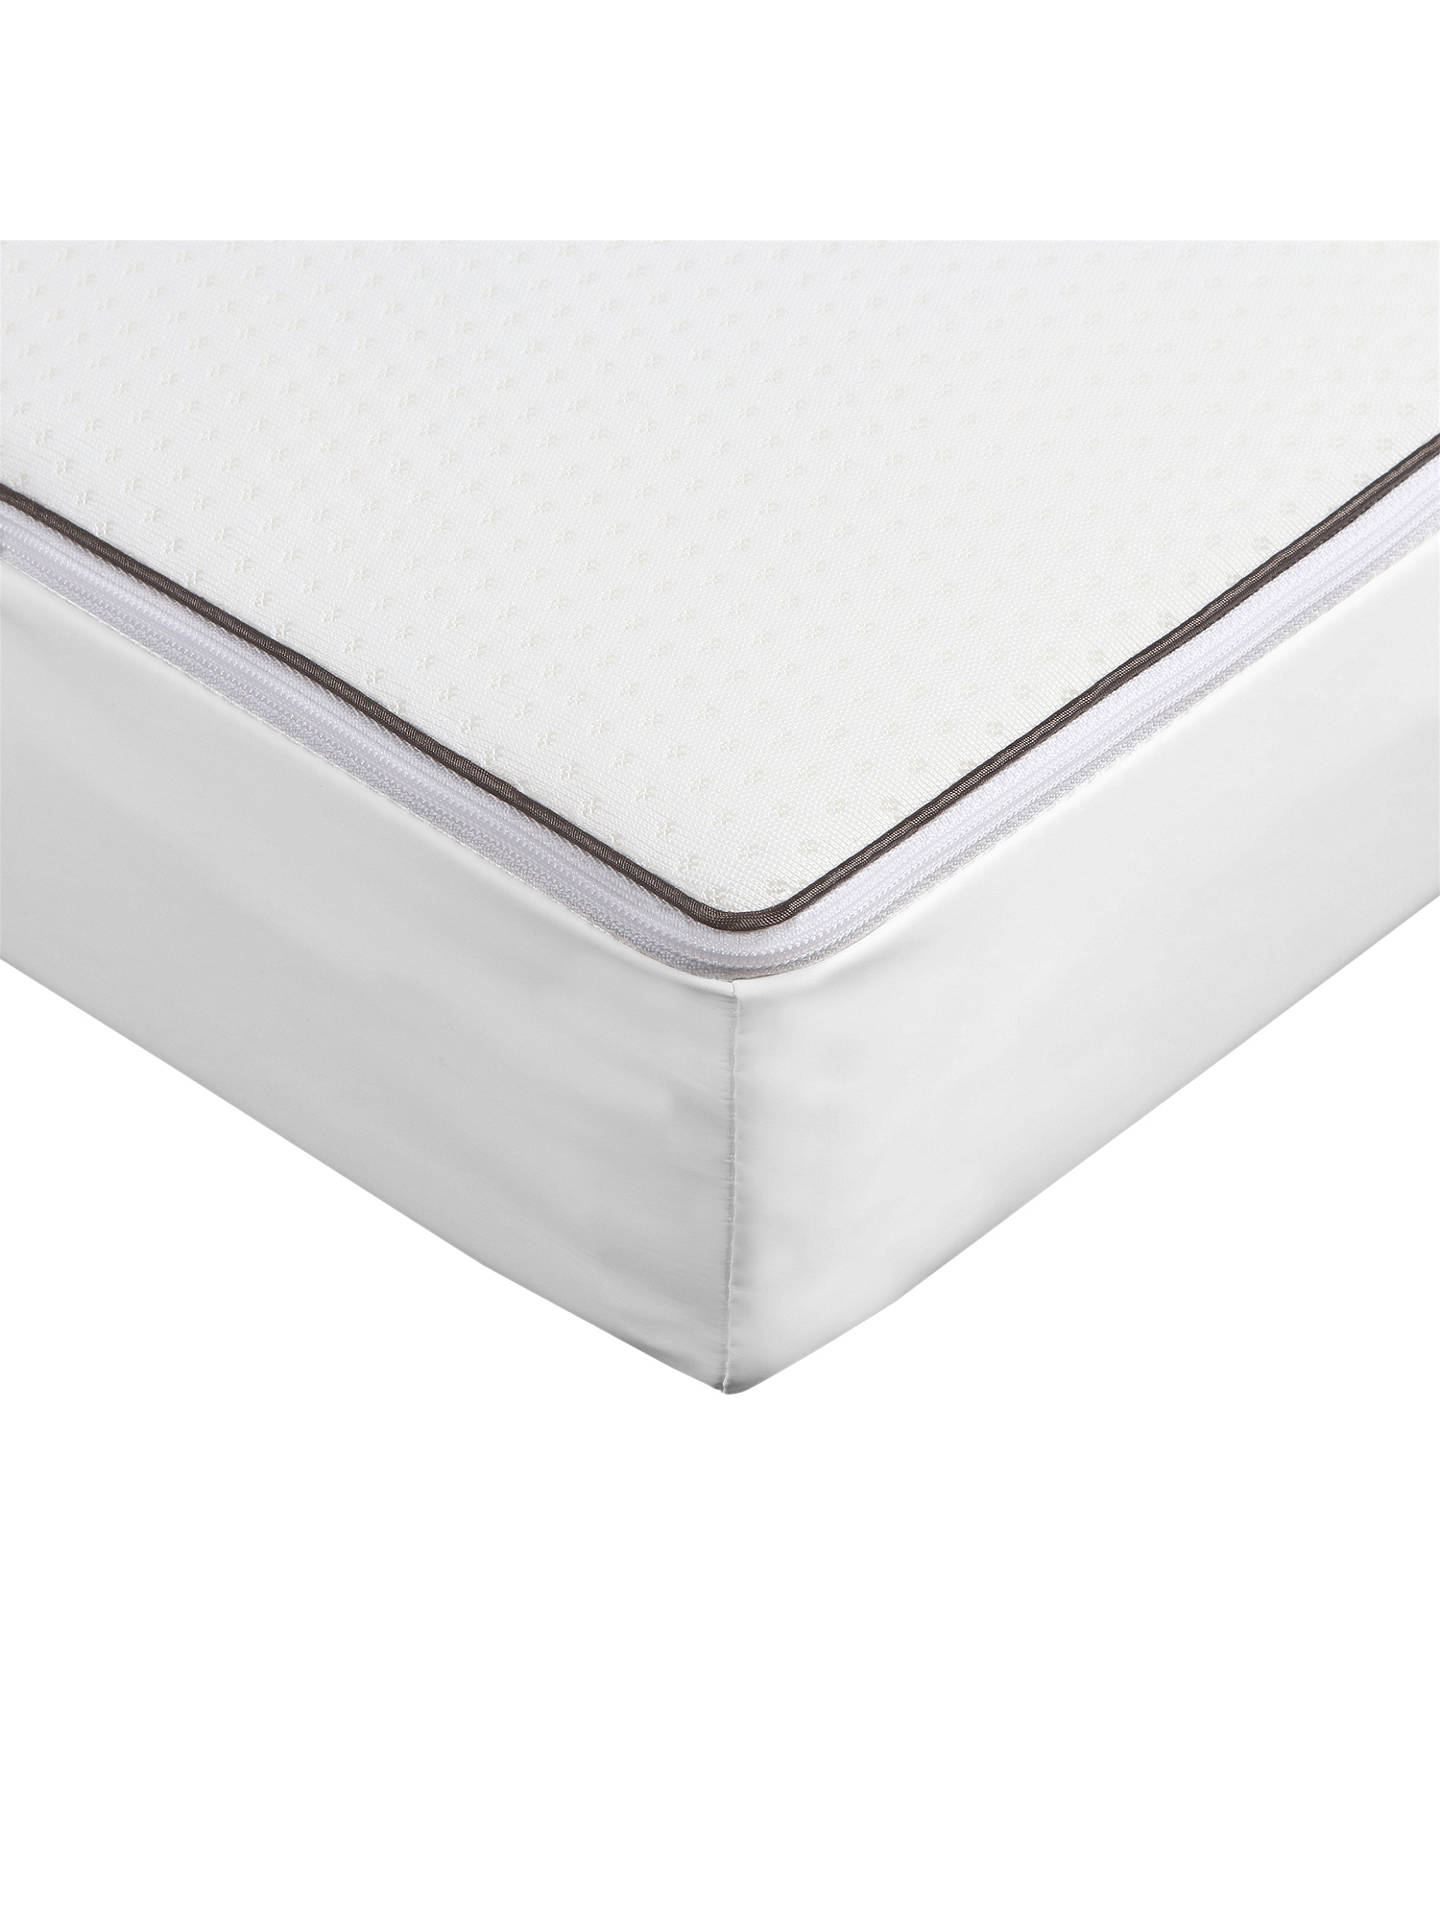 BuyJohn Lewis & Partners Pocket Spring Cotbed Mattress, 140 x 70cm Online at johnlewis.com